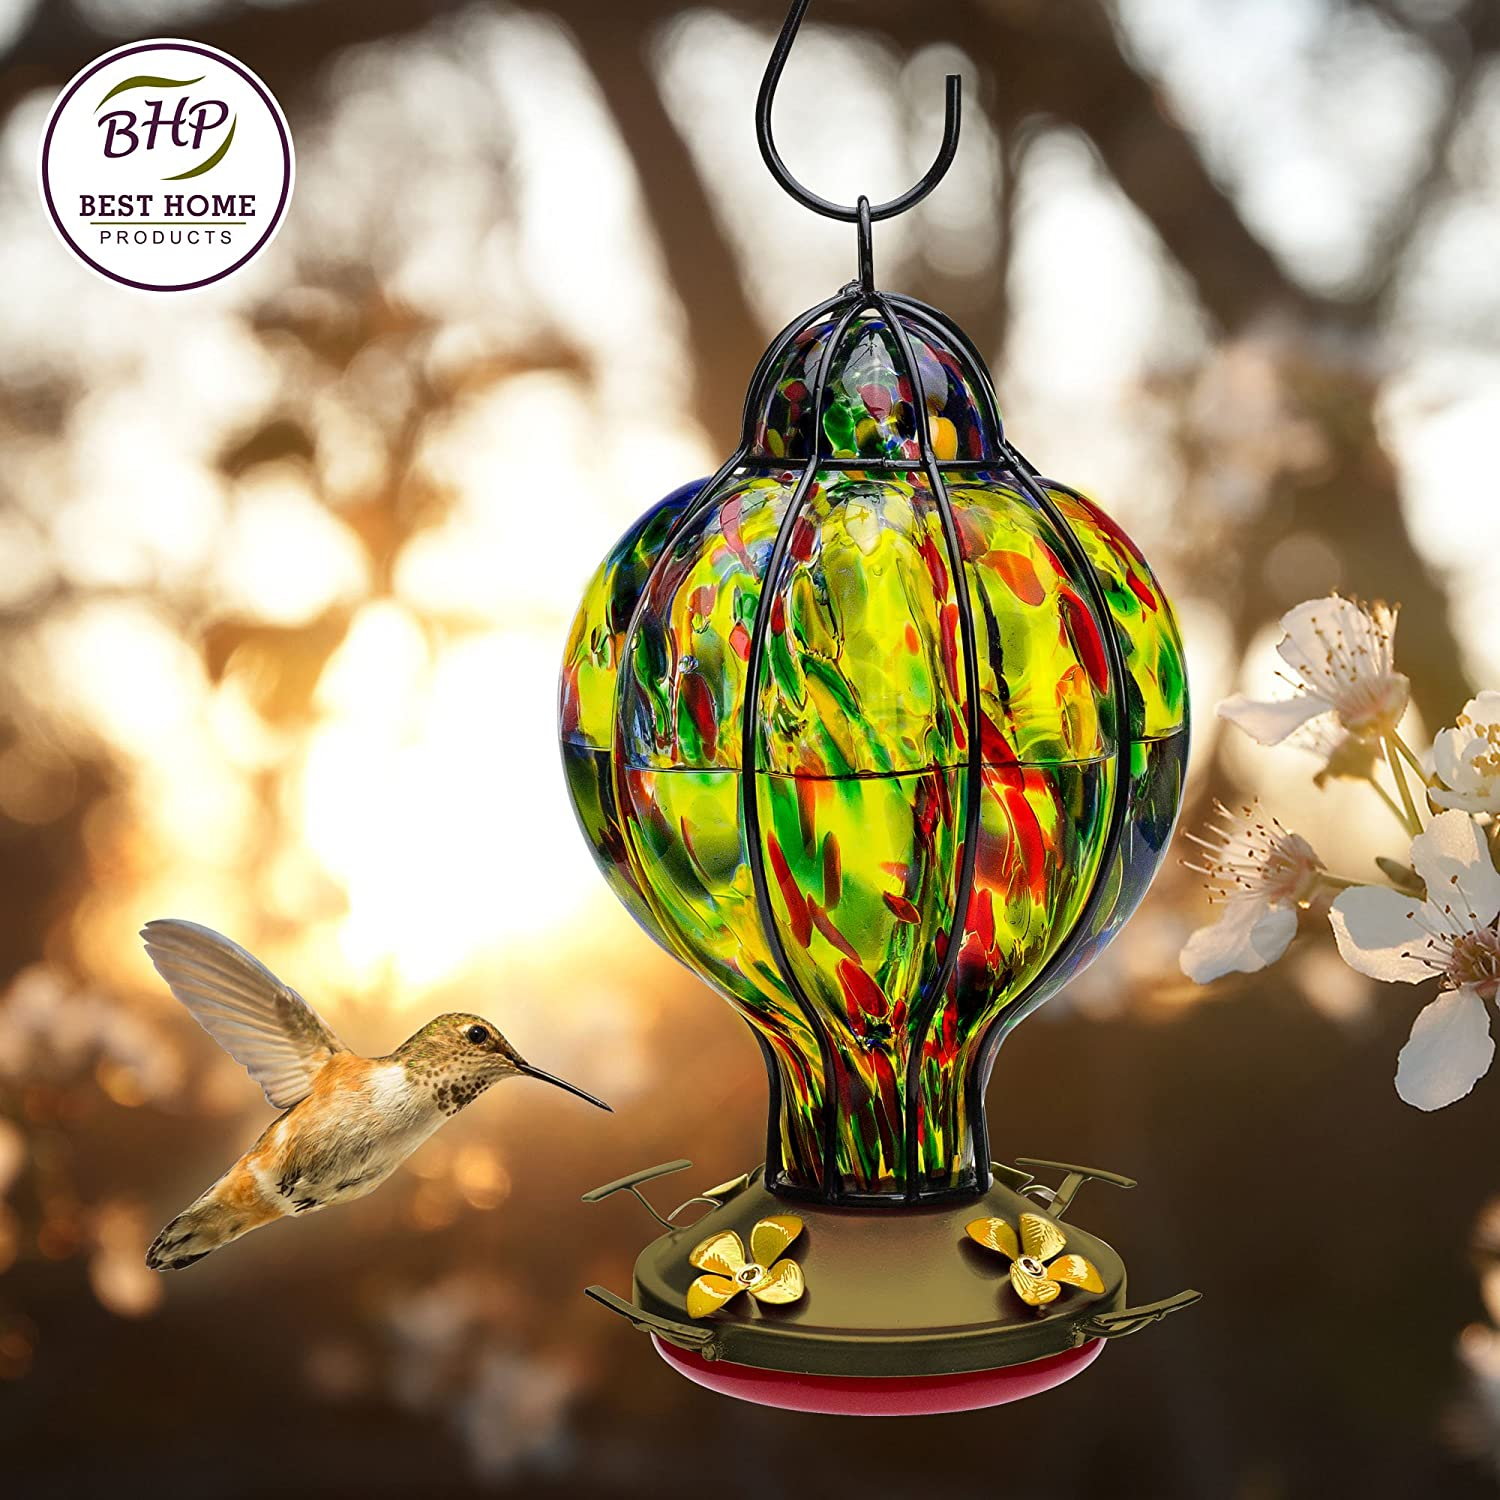 amazon looking feeder perky outdoor garden bird dp for hummingbird com glass sale feeders wild pet